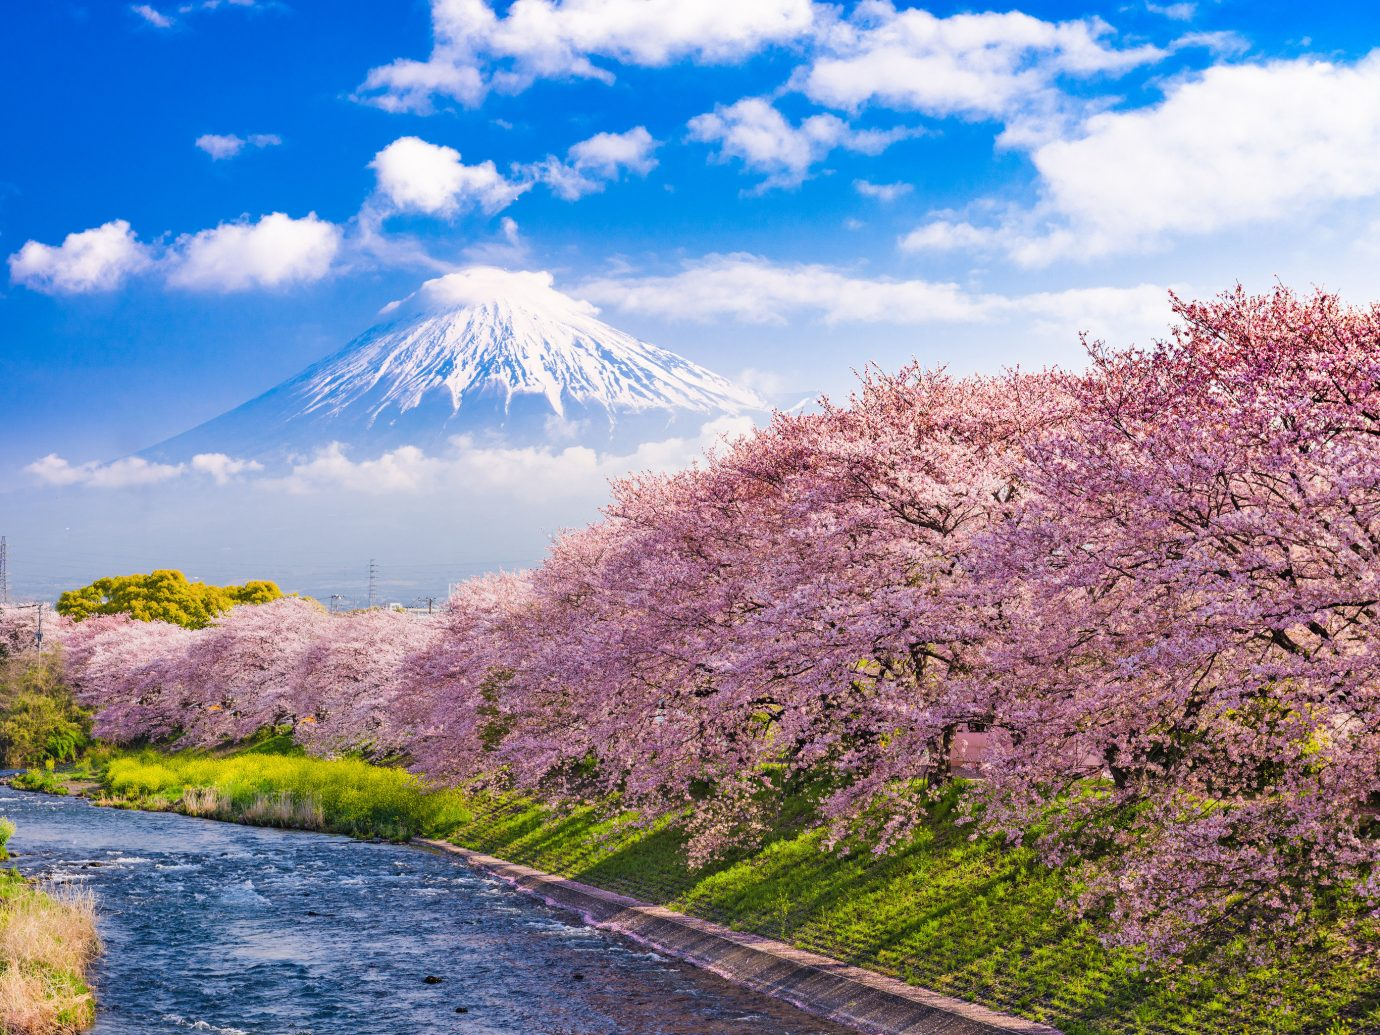 Japan Trip Ideas flower sky plant cherry blossom tree blossom spring mountain cloud mount scenery landscape national park computer wallpaper